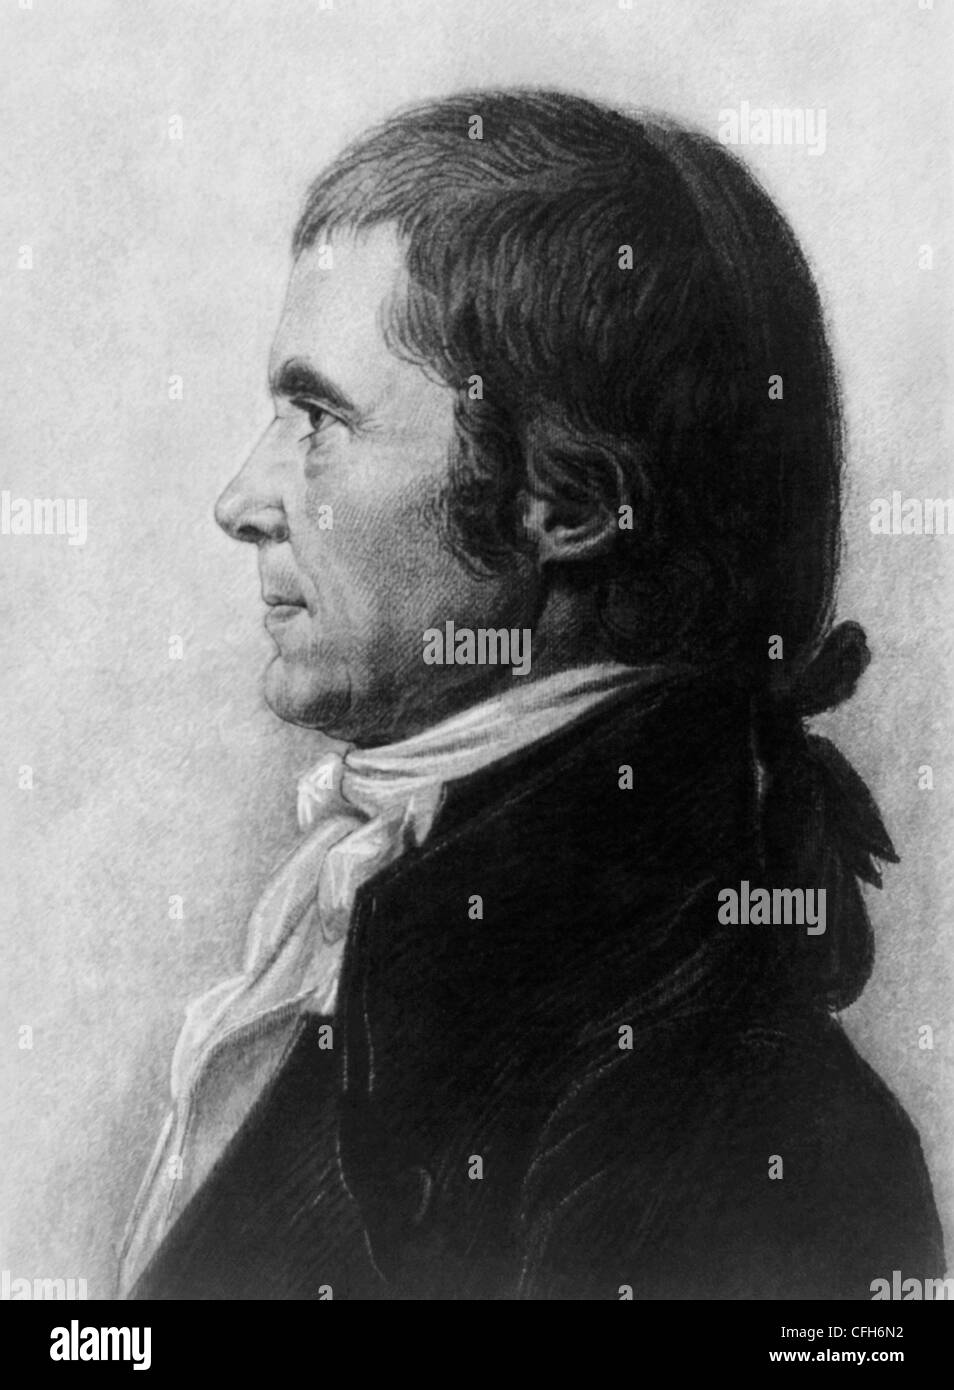 Vintage portrait print of American statesman and judge John Marshall (1755 - 1835) - the fourth US Chief Justice Stock Photo